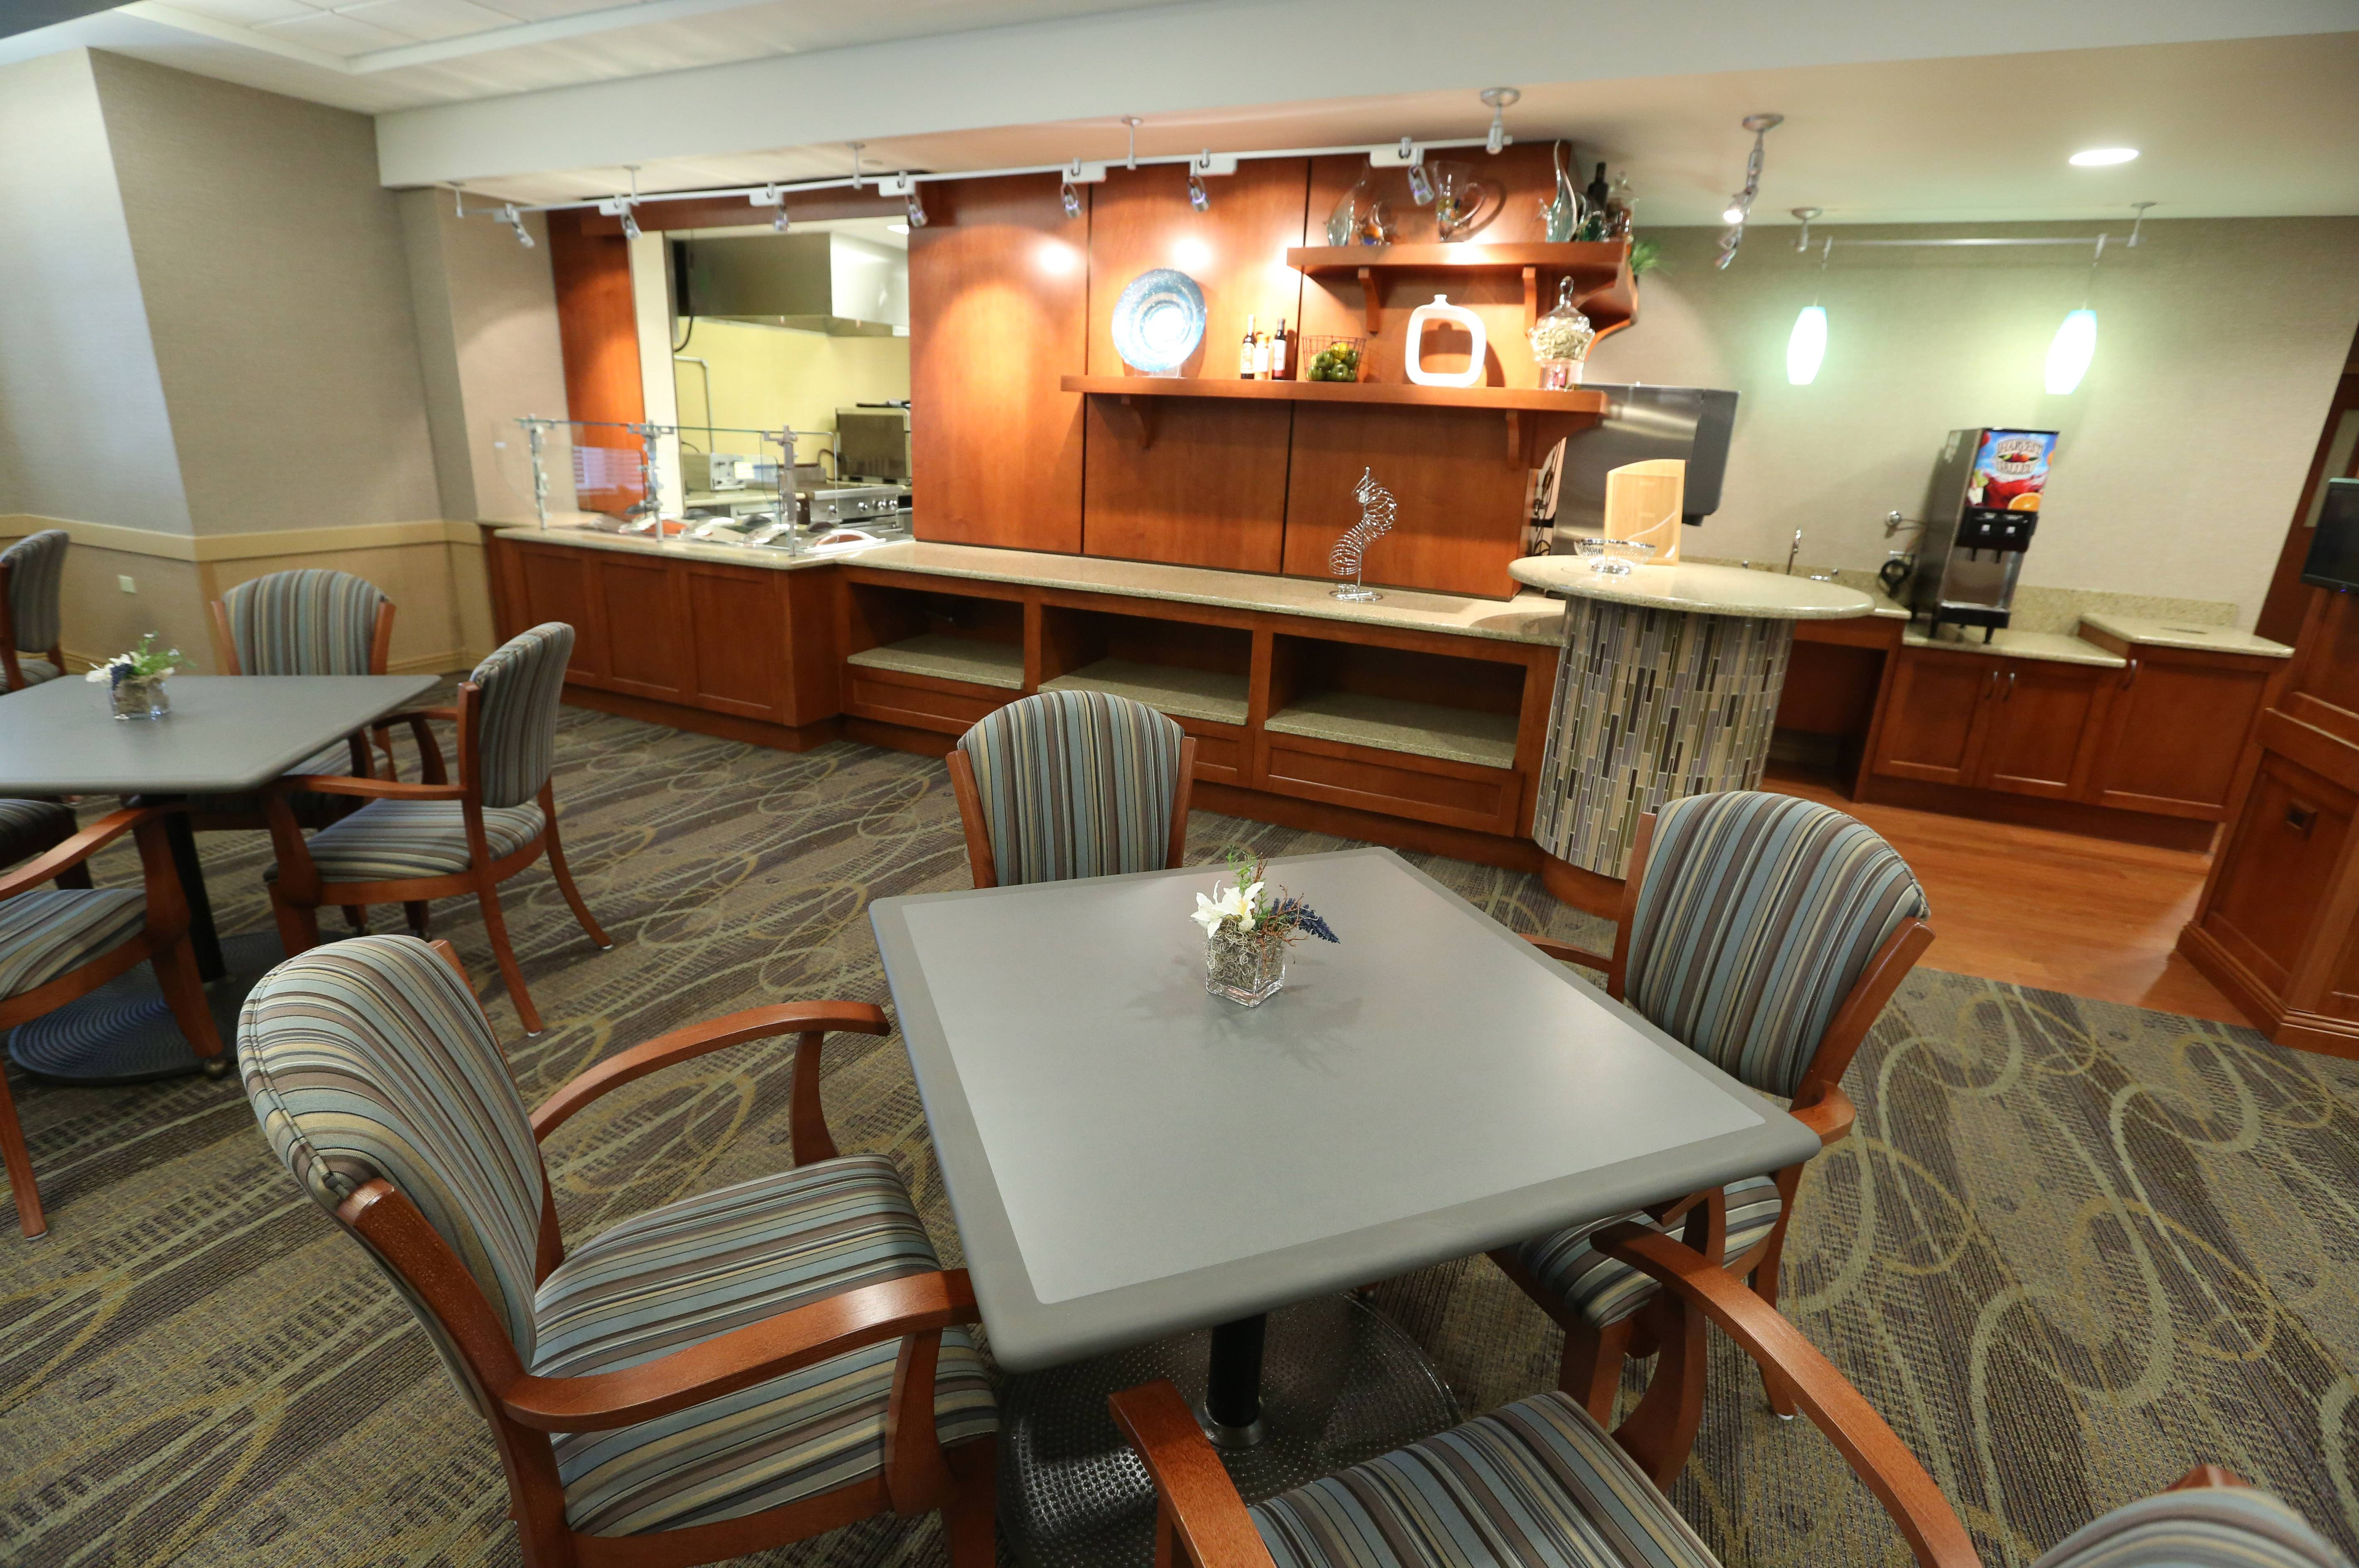 Lutheran Home's new MyRehab Center in Arlington Heights includes a bistro dining area. The center geared toward short-term rehabilitation patients is the first of a three-part, $64 million project to modernize and renovate Lutheran Home.